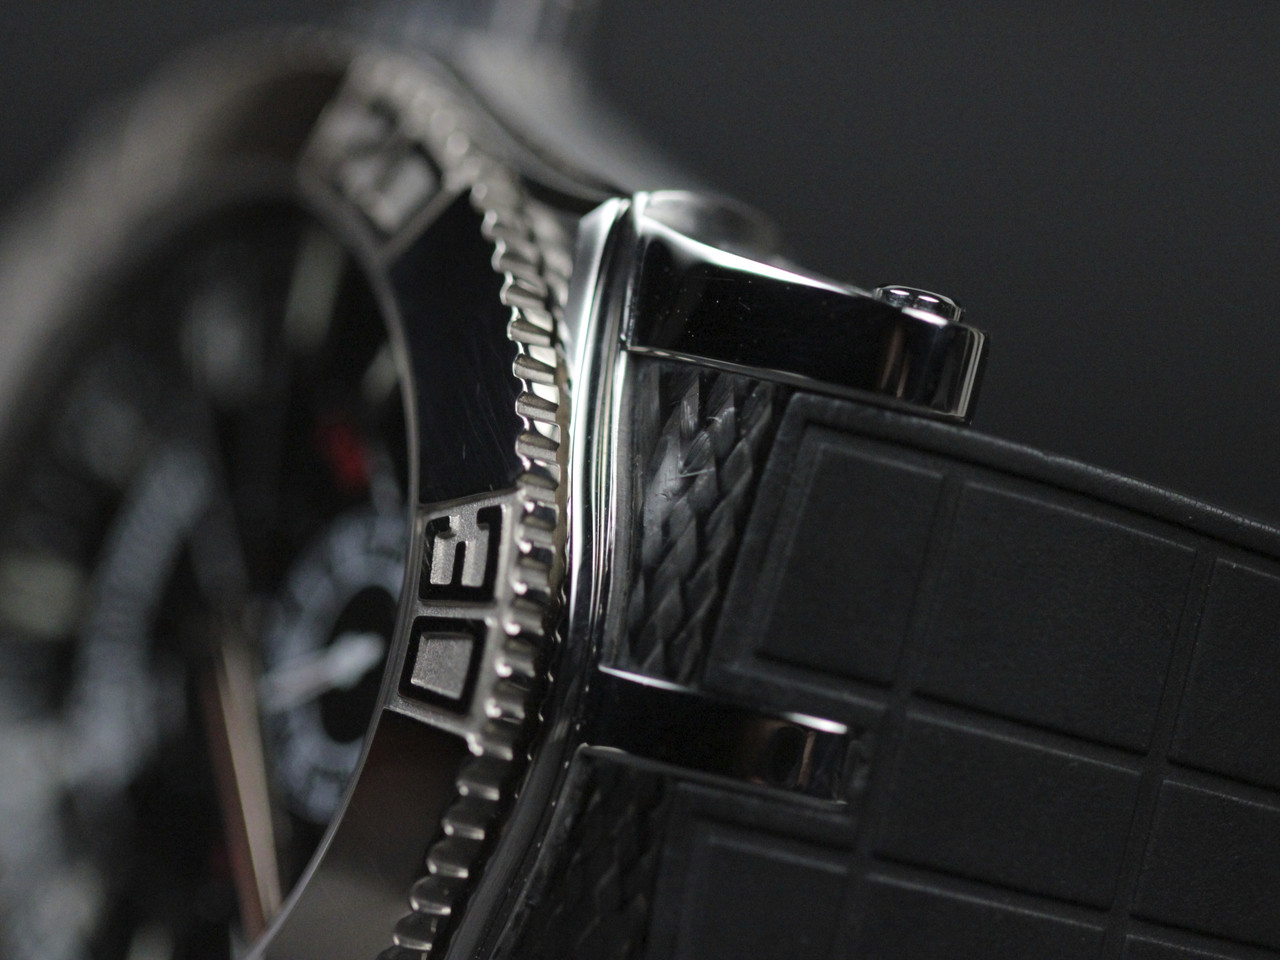 Case Detail - Roger Dubuis Watch - Easy Diver Black Dial White Gold Bezel - Legend of Time Chicago Watch Center